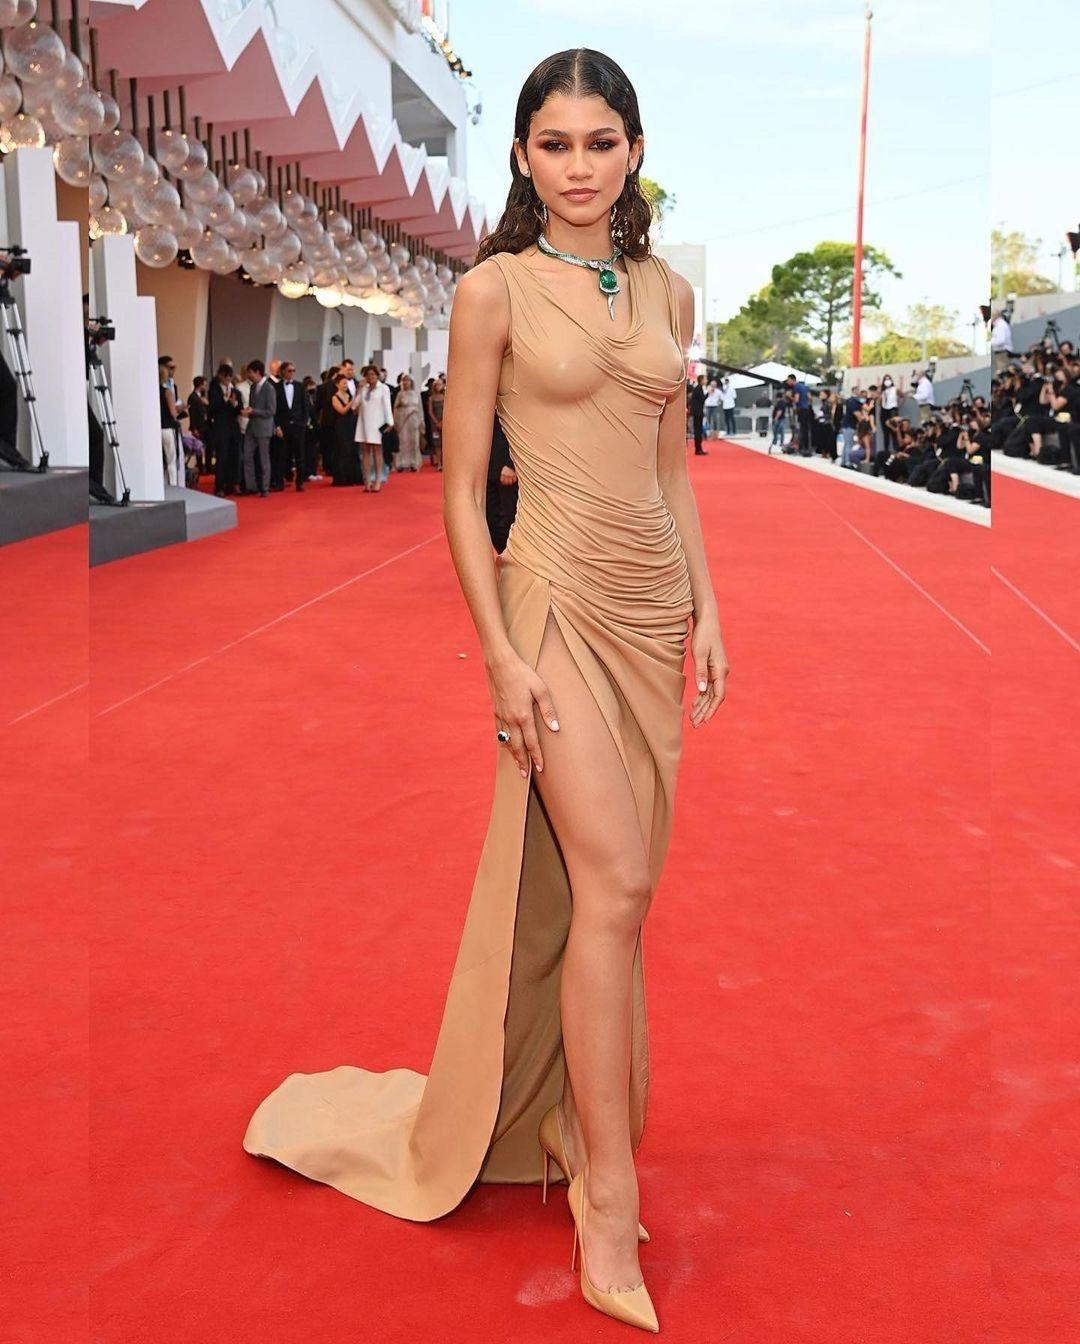 Zendaya Stuns in Custom Balmain Nude Leather Draped Dress for the Premiere of 'Dune' at Venice Film Festival + Birthday Look Featuring Valentino Brown Puff Mini Dress